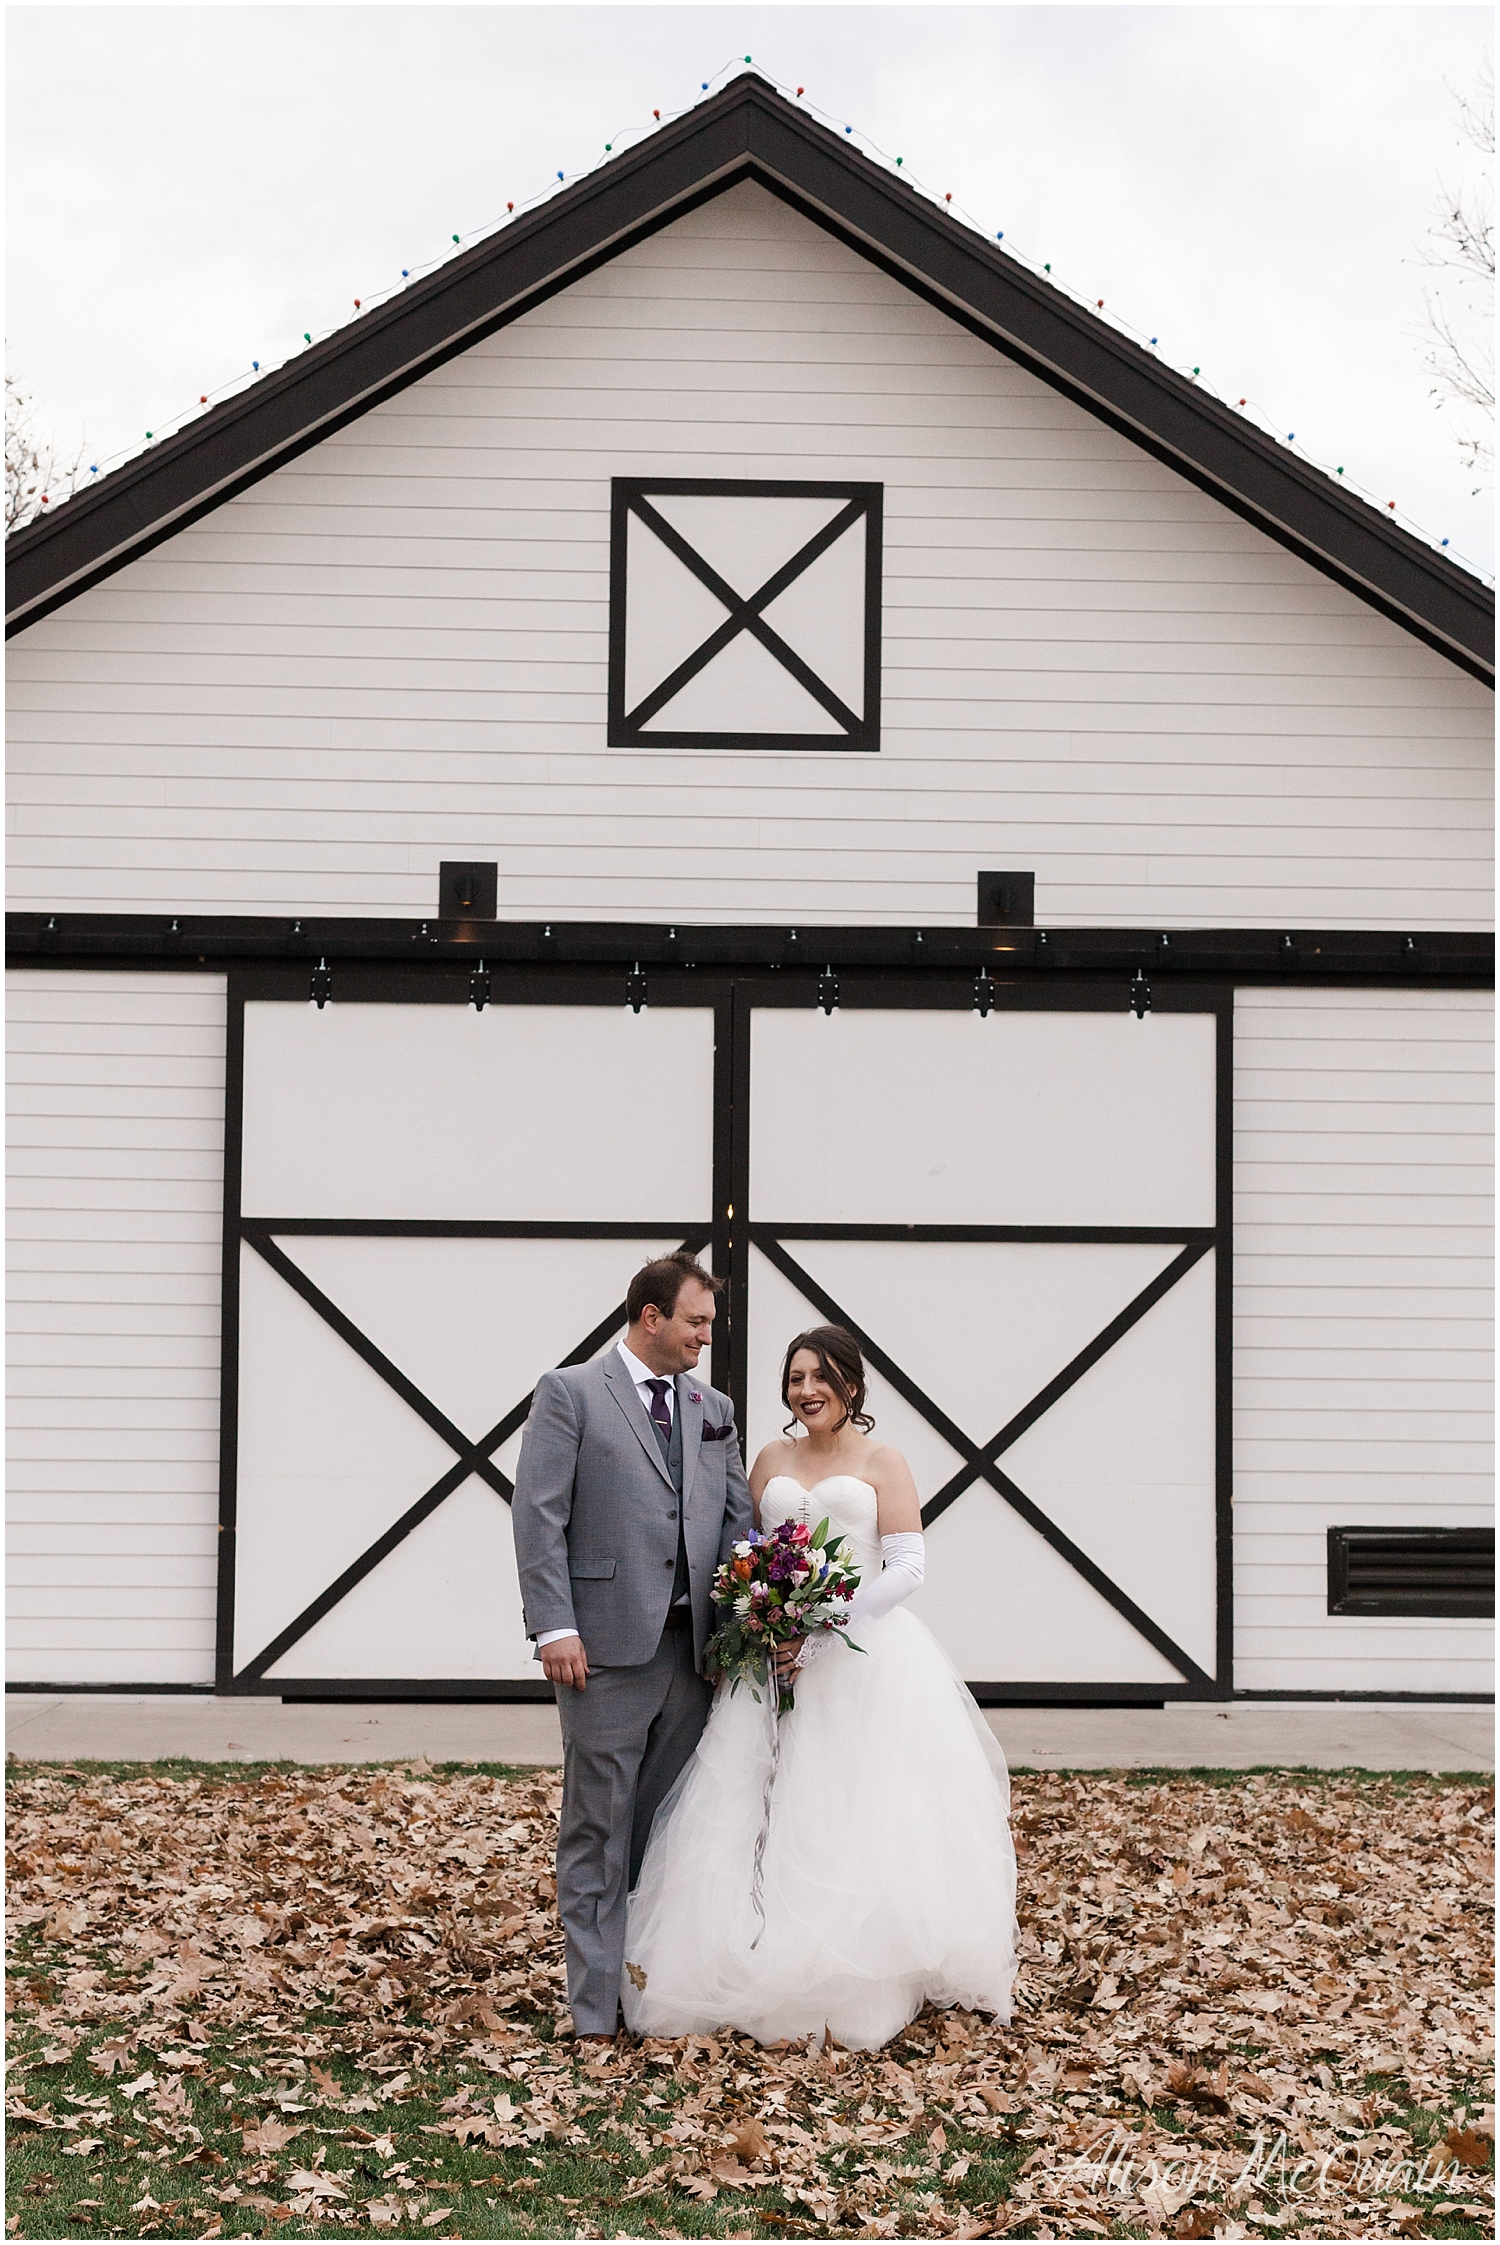 Zako_Wedding_ChatfieldFarm_Denver_Fall_2018_AlisonMcQuainPhotography_0035.jpg